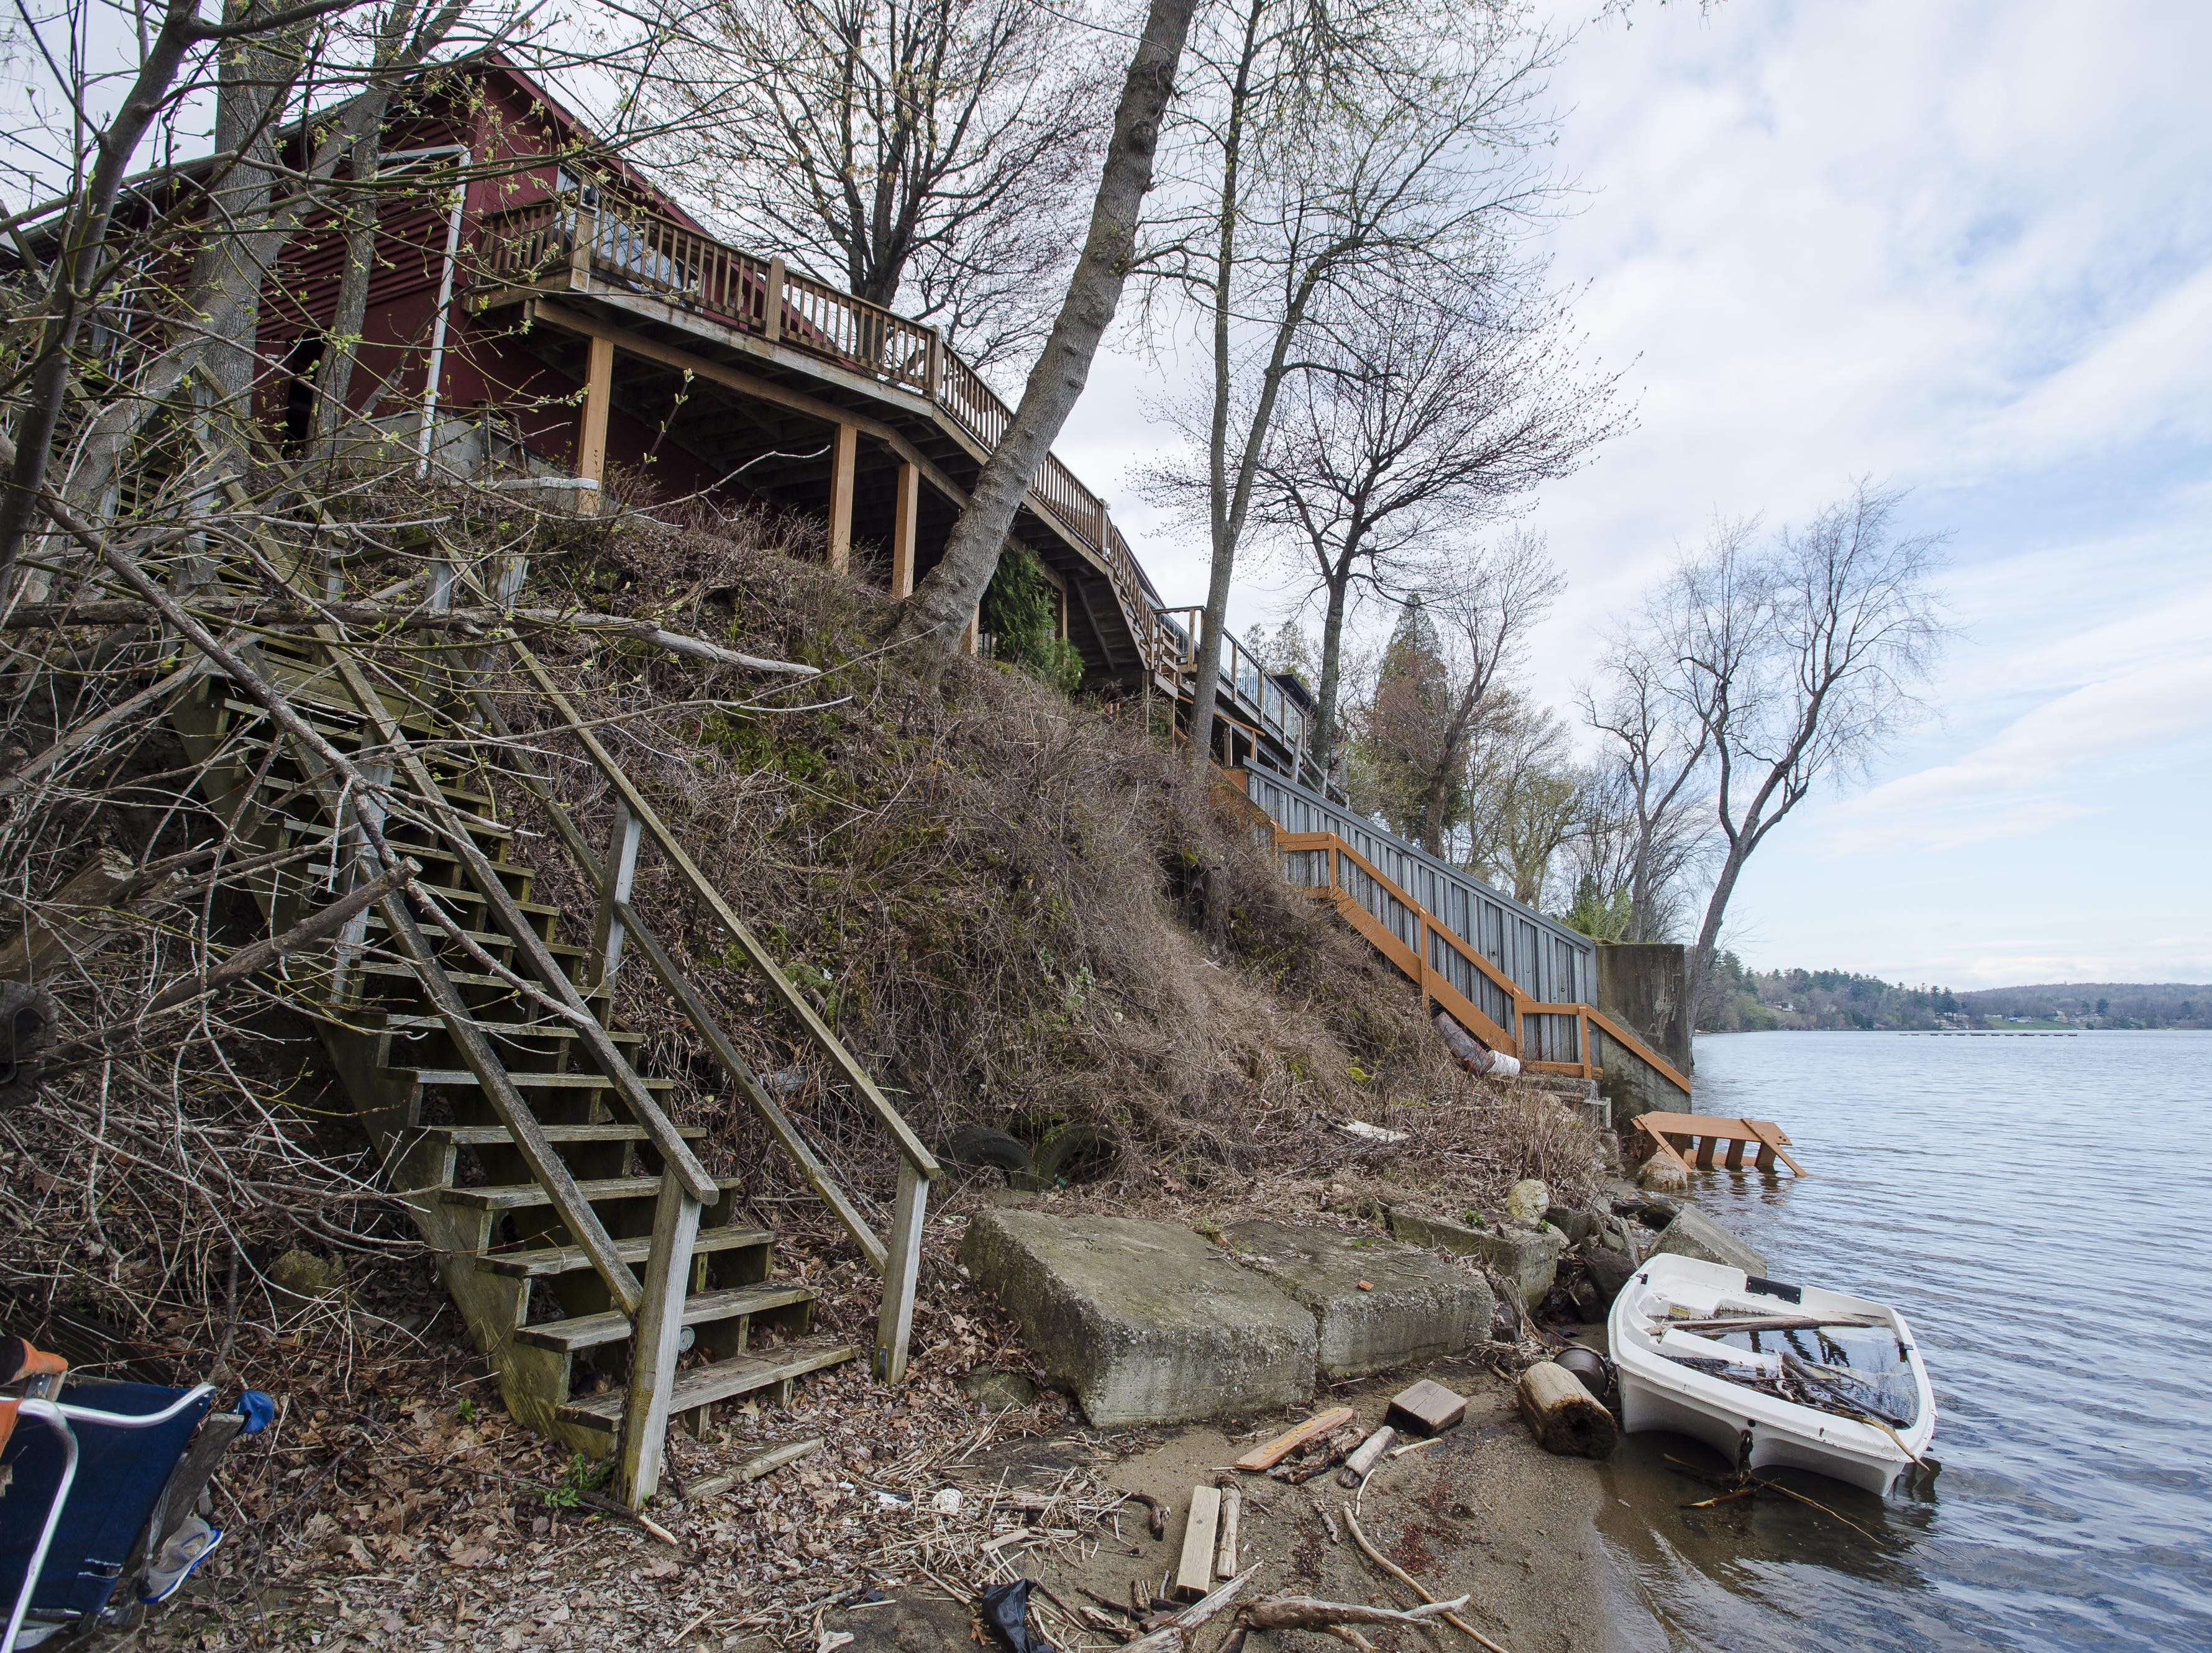 Low-lying concrete blocks line the shoreline below a home on East Lakeshore Drive in Colchester on Thursday, April 28, 2017.